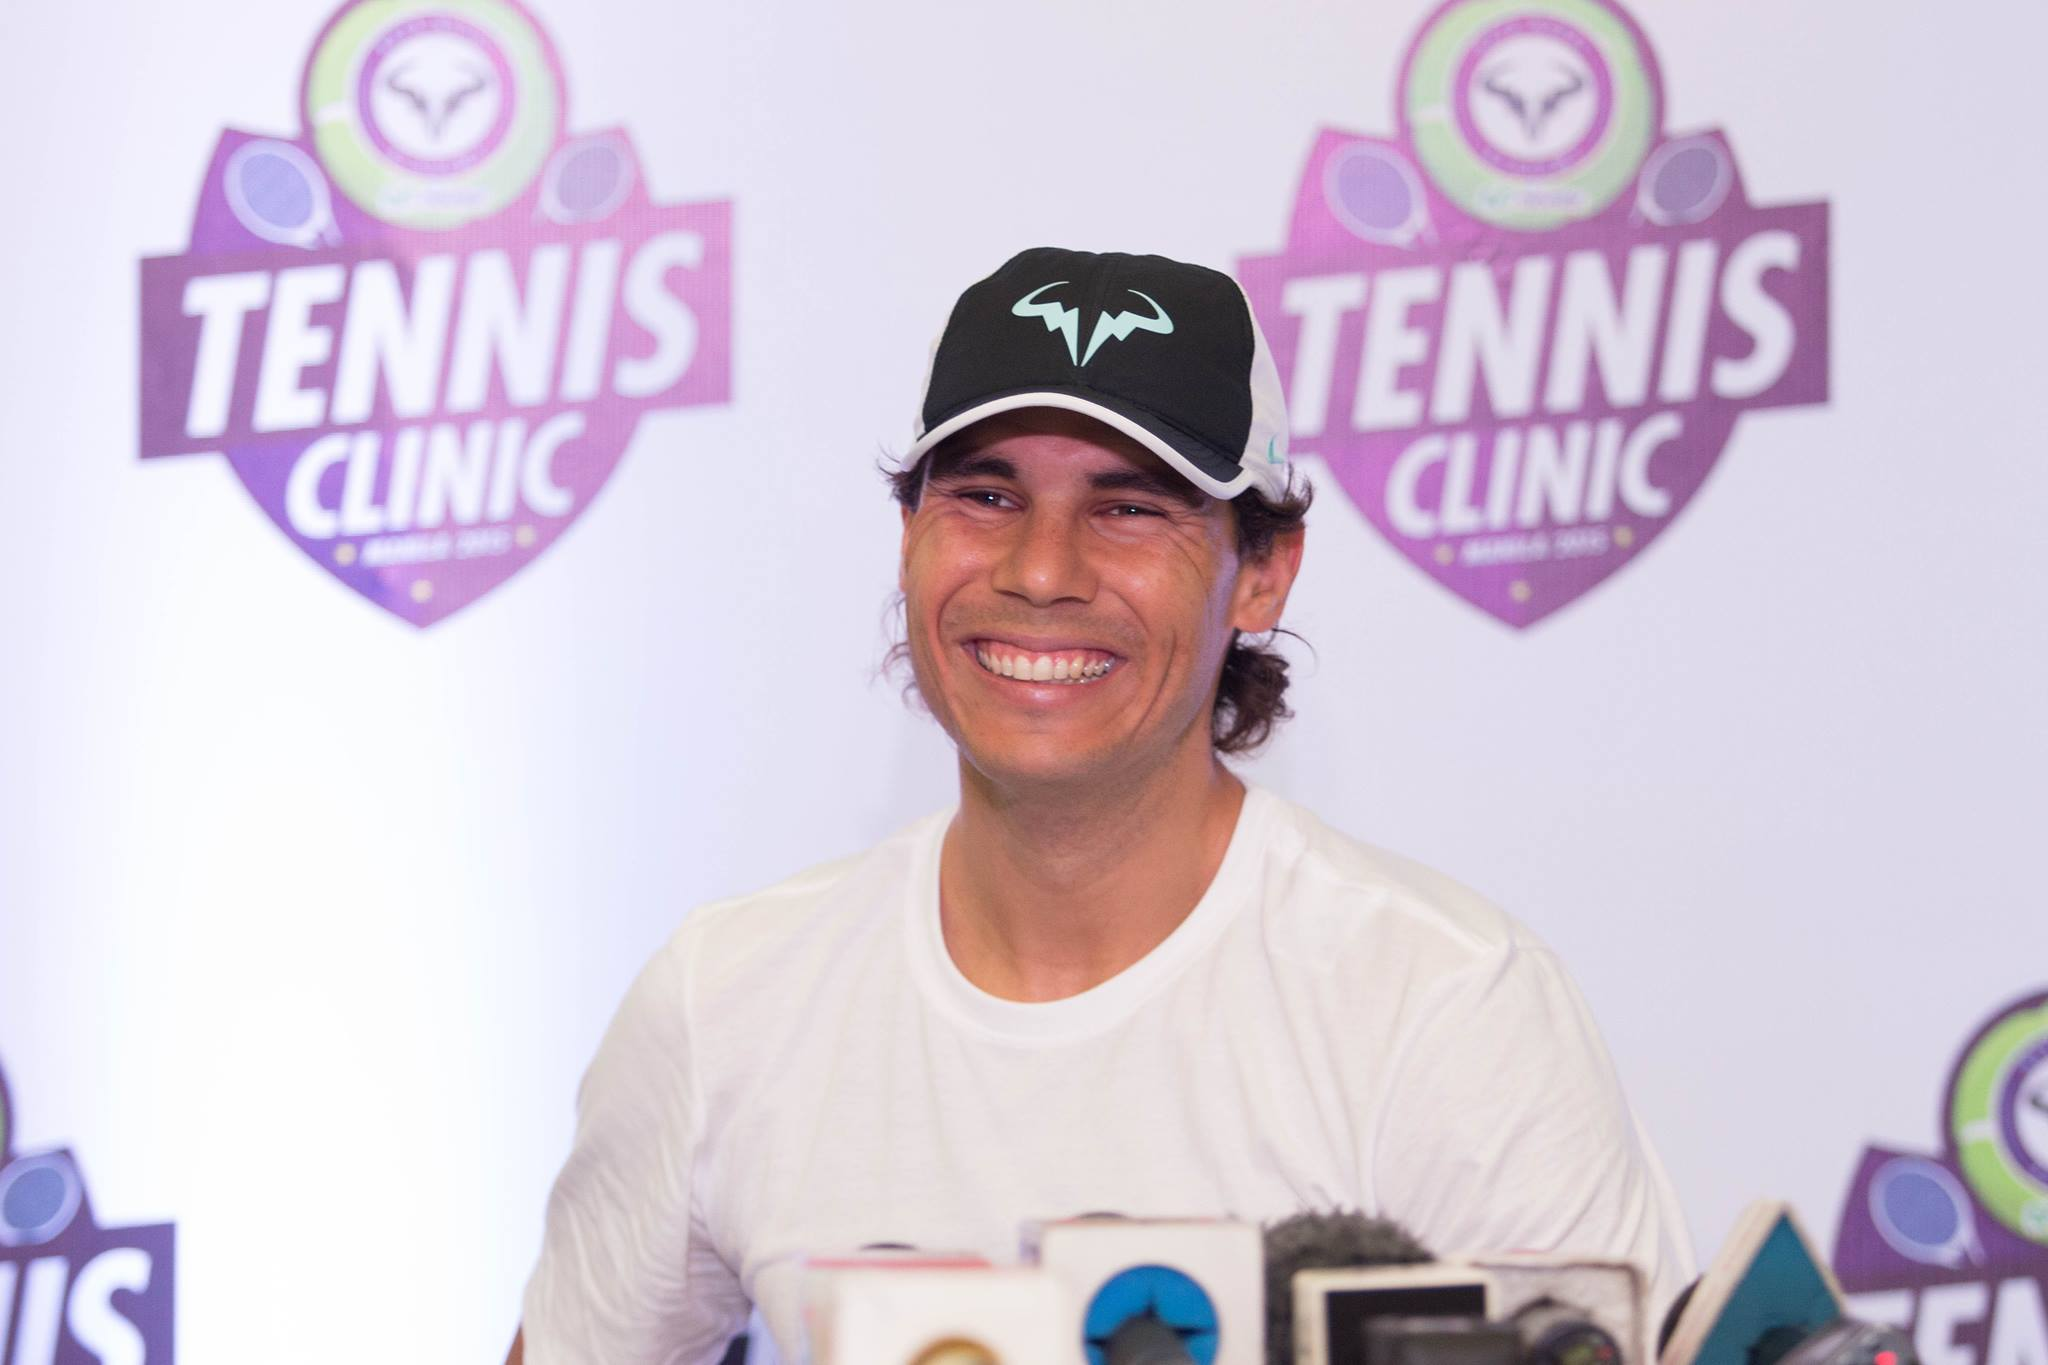 NADAL IN MANILA. Rafa Nadal is all smiles despite arriving in the Philippines late the night before. Photo by Ena Terol/Rappler